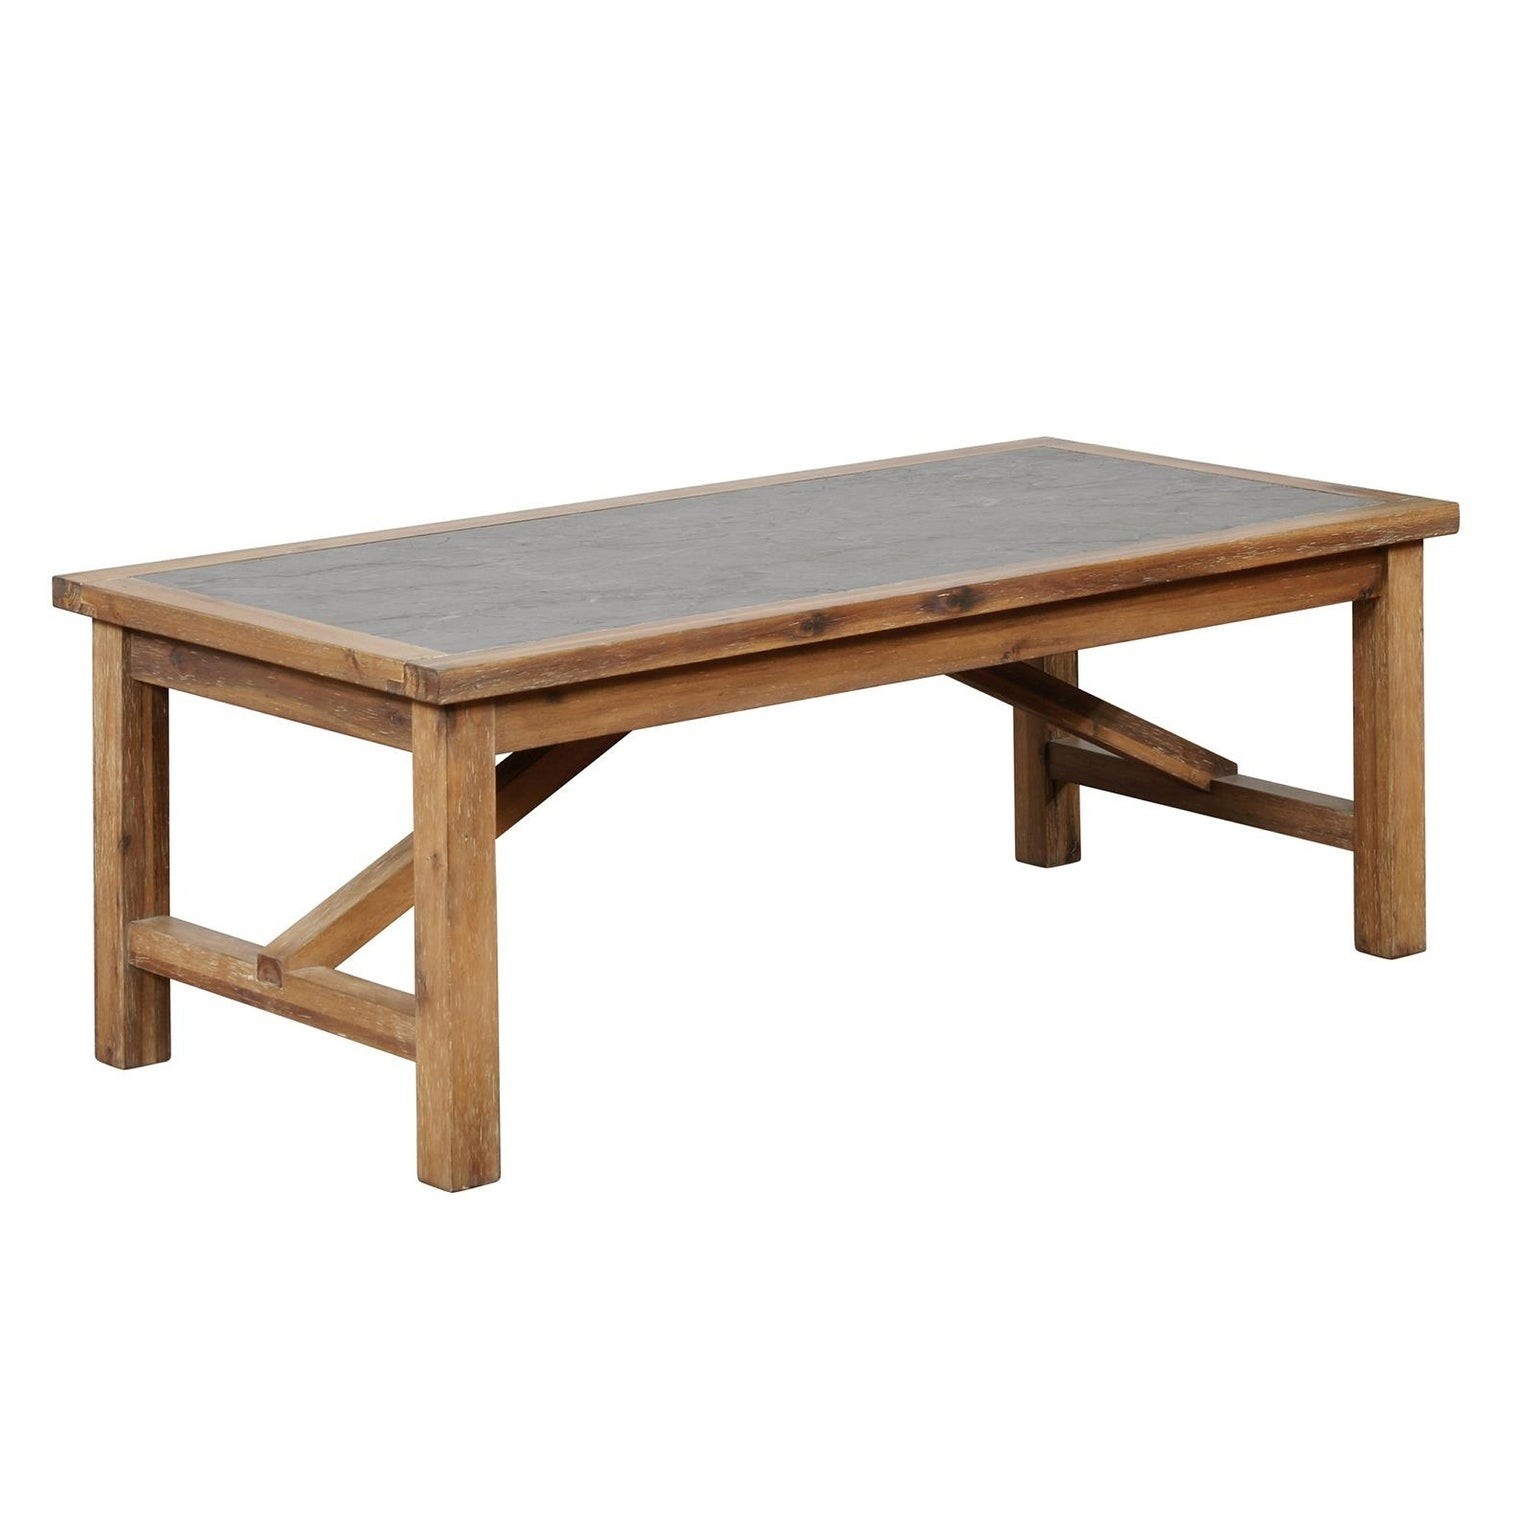 Rectangular Wood and Metal Coffee Table with Block Legs,Brown and Gray